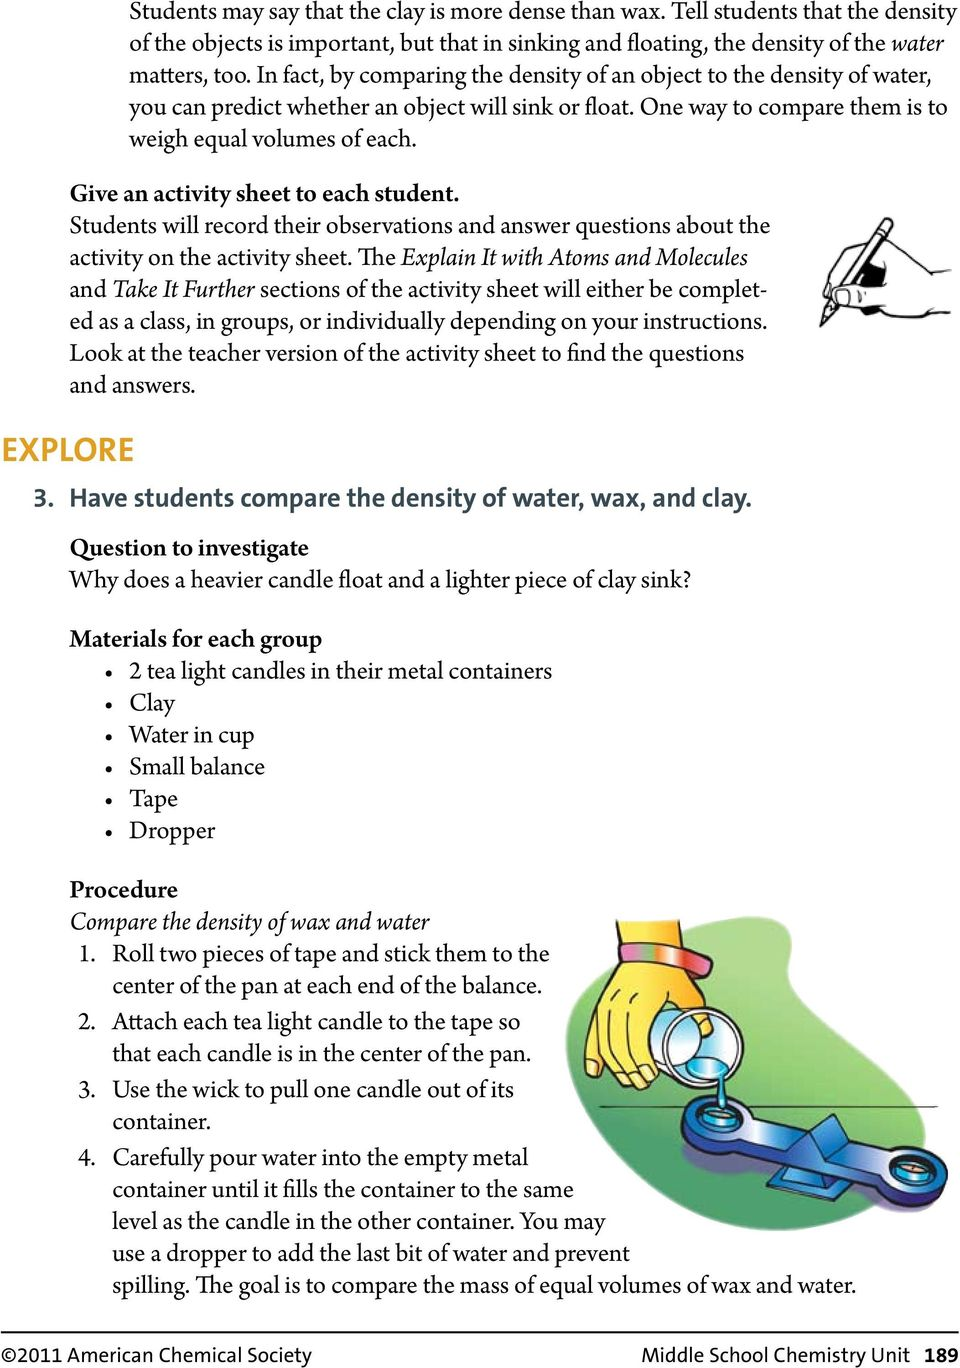 Give an activity sheet to each student. Students will record their observations and answer questions about the activity on the activity sheet.